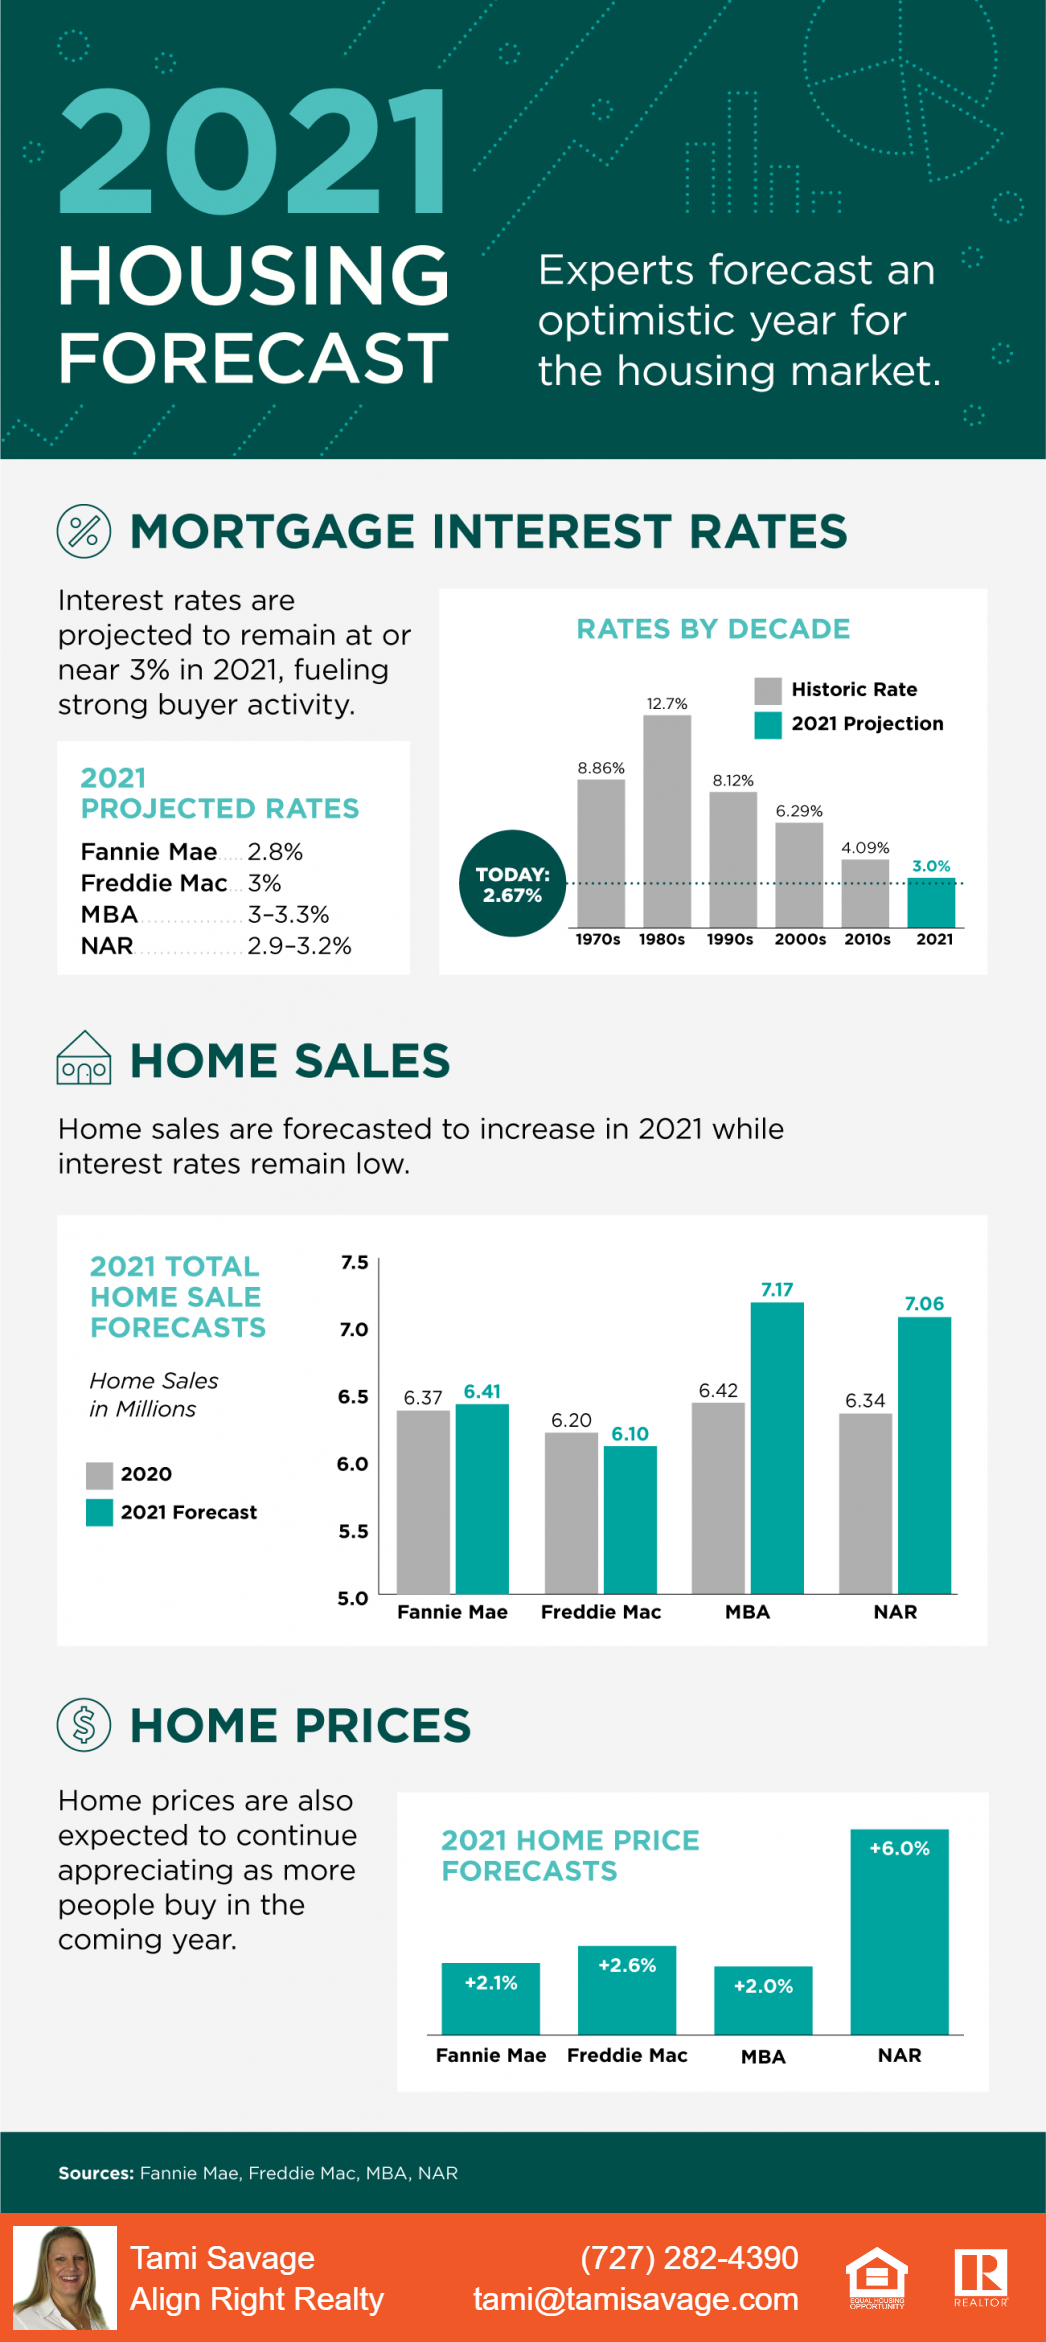 2021 Housing Forecast. Experts forecast an optimistic year for the housing market. Mortgage Interest Rates are projected to remain at or near 3% in 2021, fueling strong buyer activity. Home sales are forecasted to increase in 2021 while interest rates remain low. Home prices are also expected to continue appreciating as more people buy in the coming year. Sources: Fannie Mae, Freddie Mac, MBA, NAR